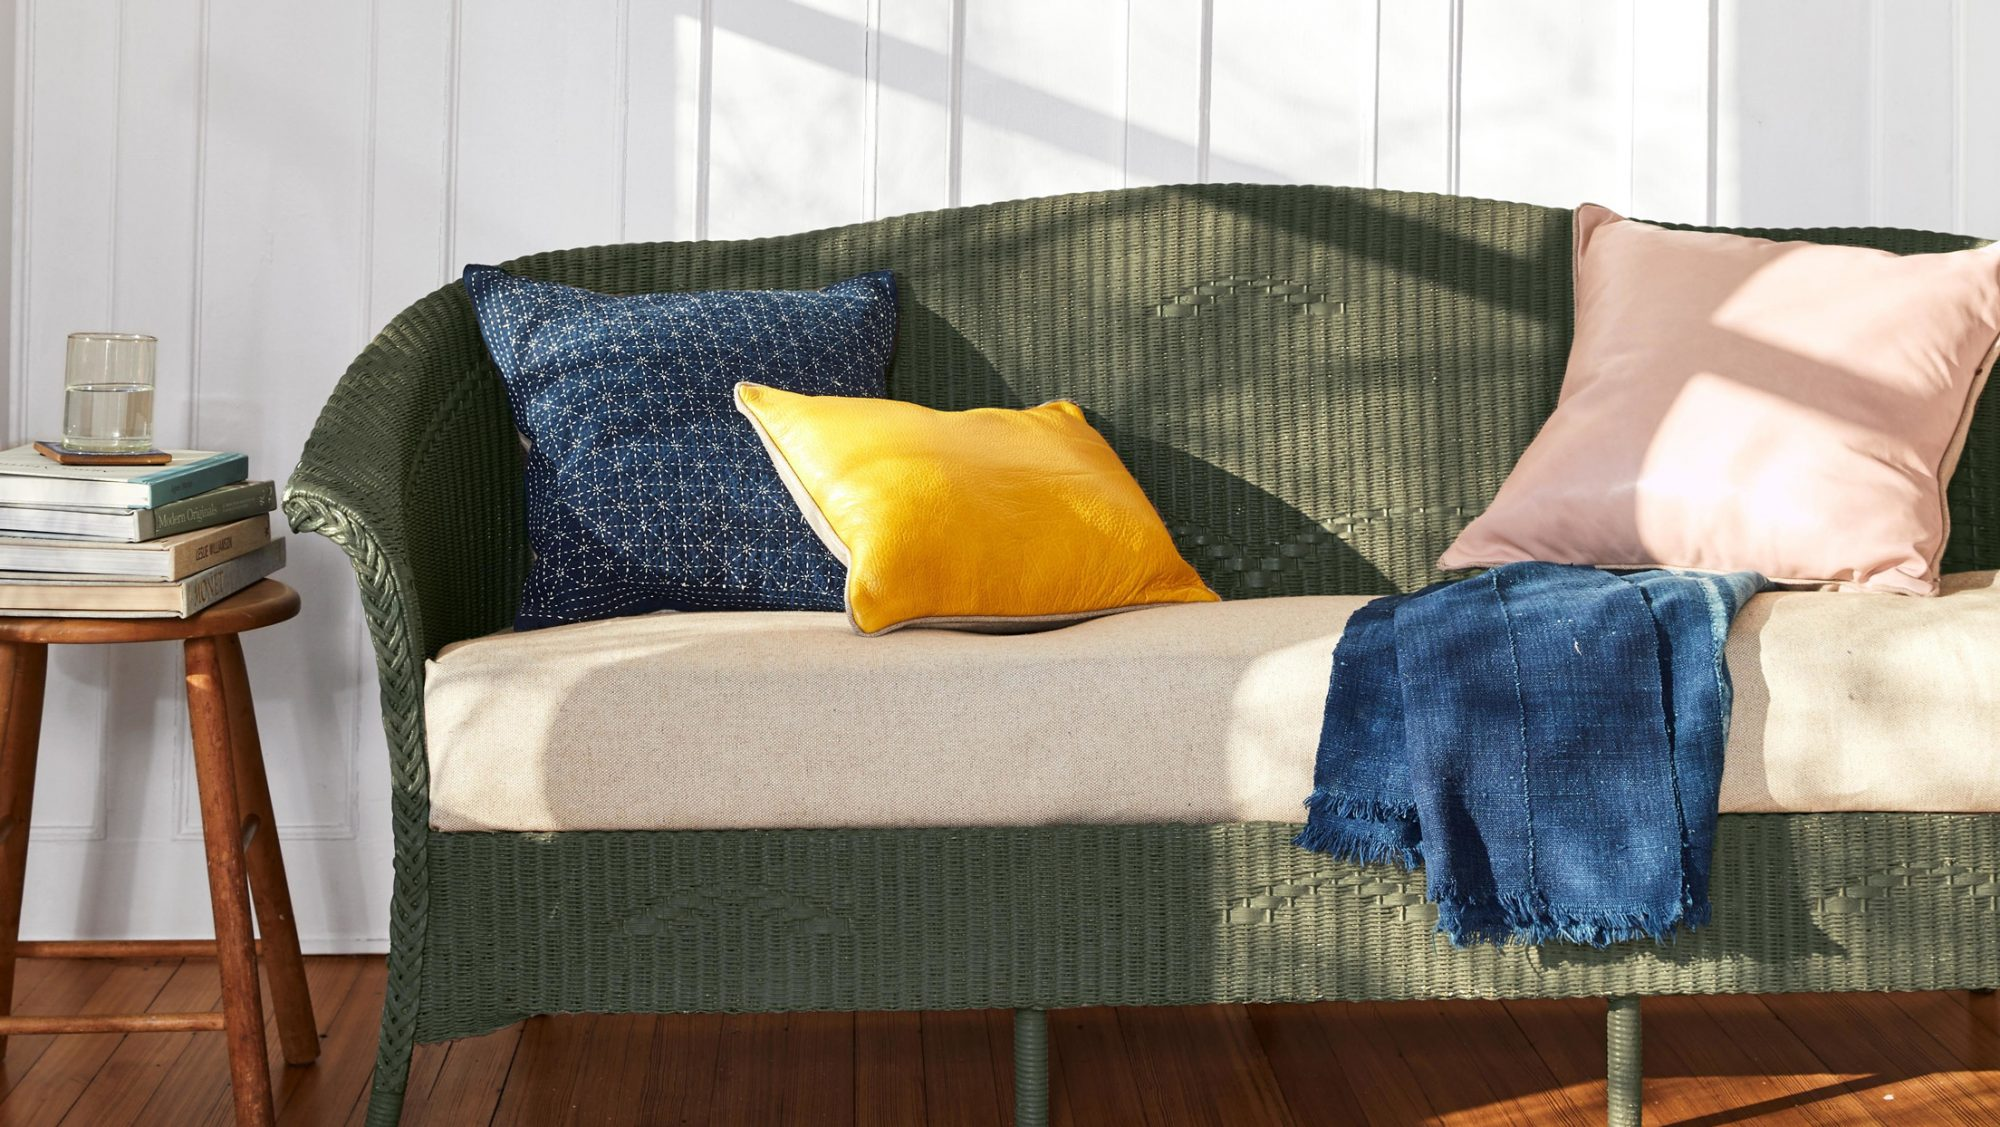 olive green painted wicker sofa with throw pillows